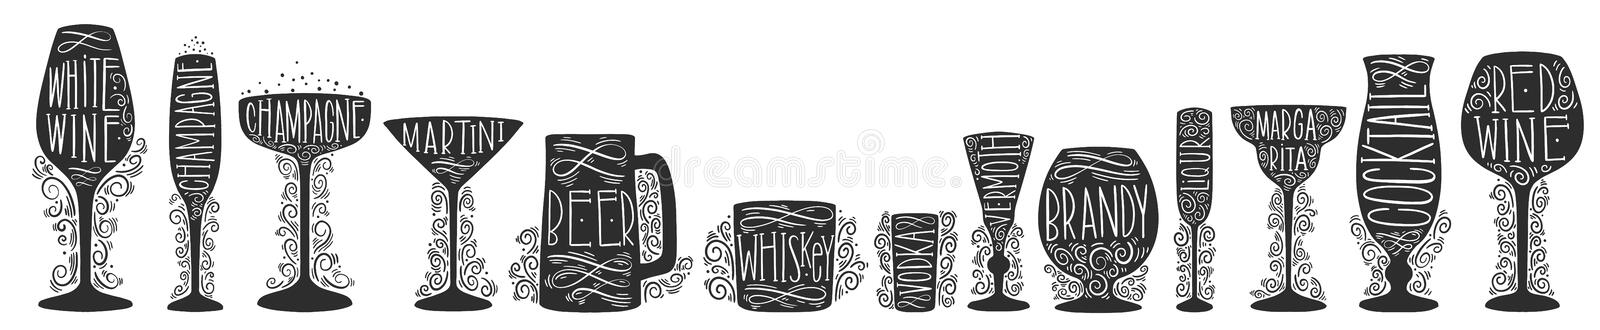 Set of silhouette images of glass glasses for different drinks. Shape stemware lettering text vector illustration